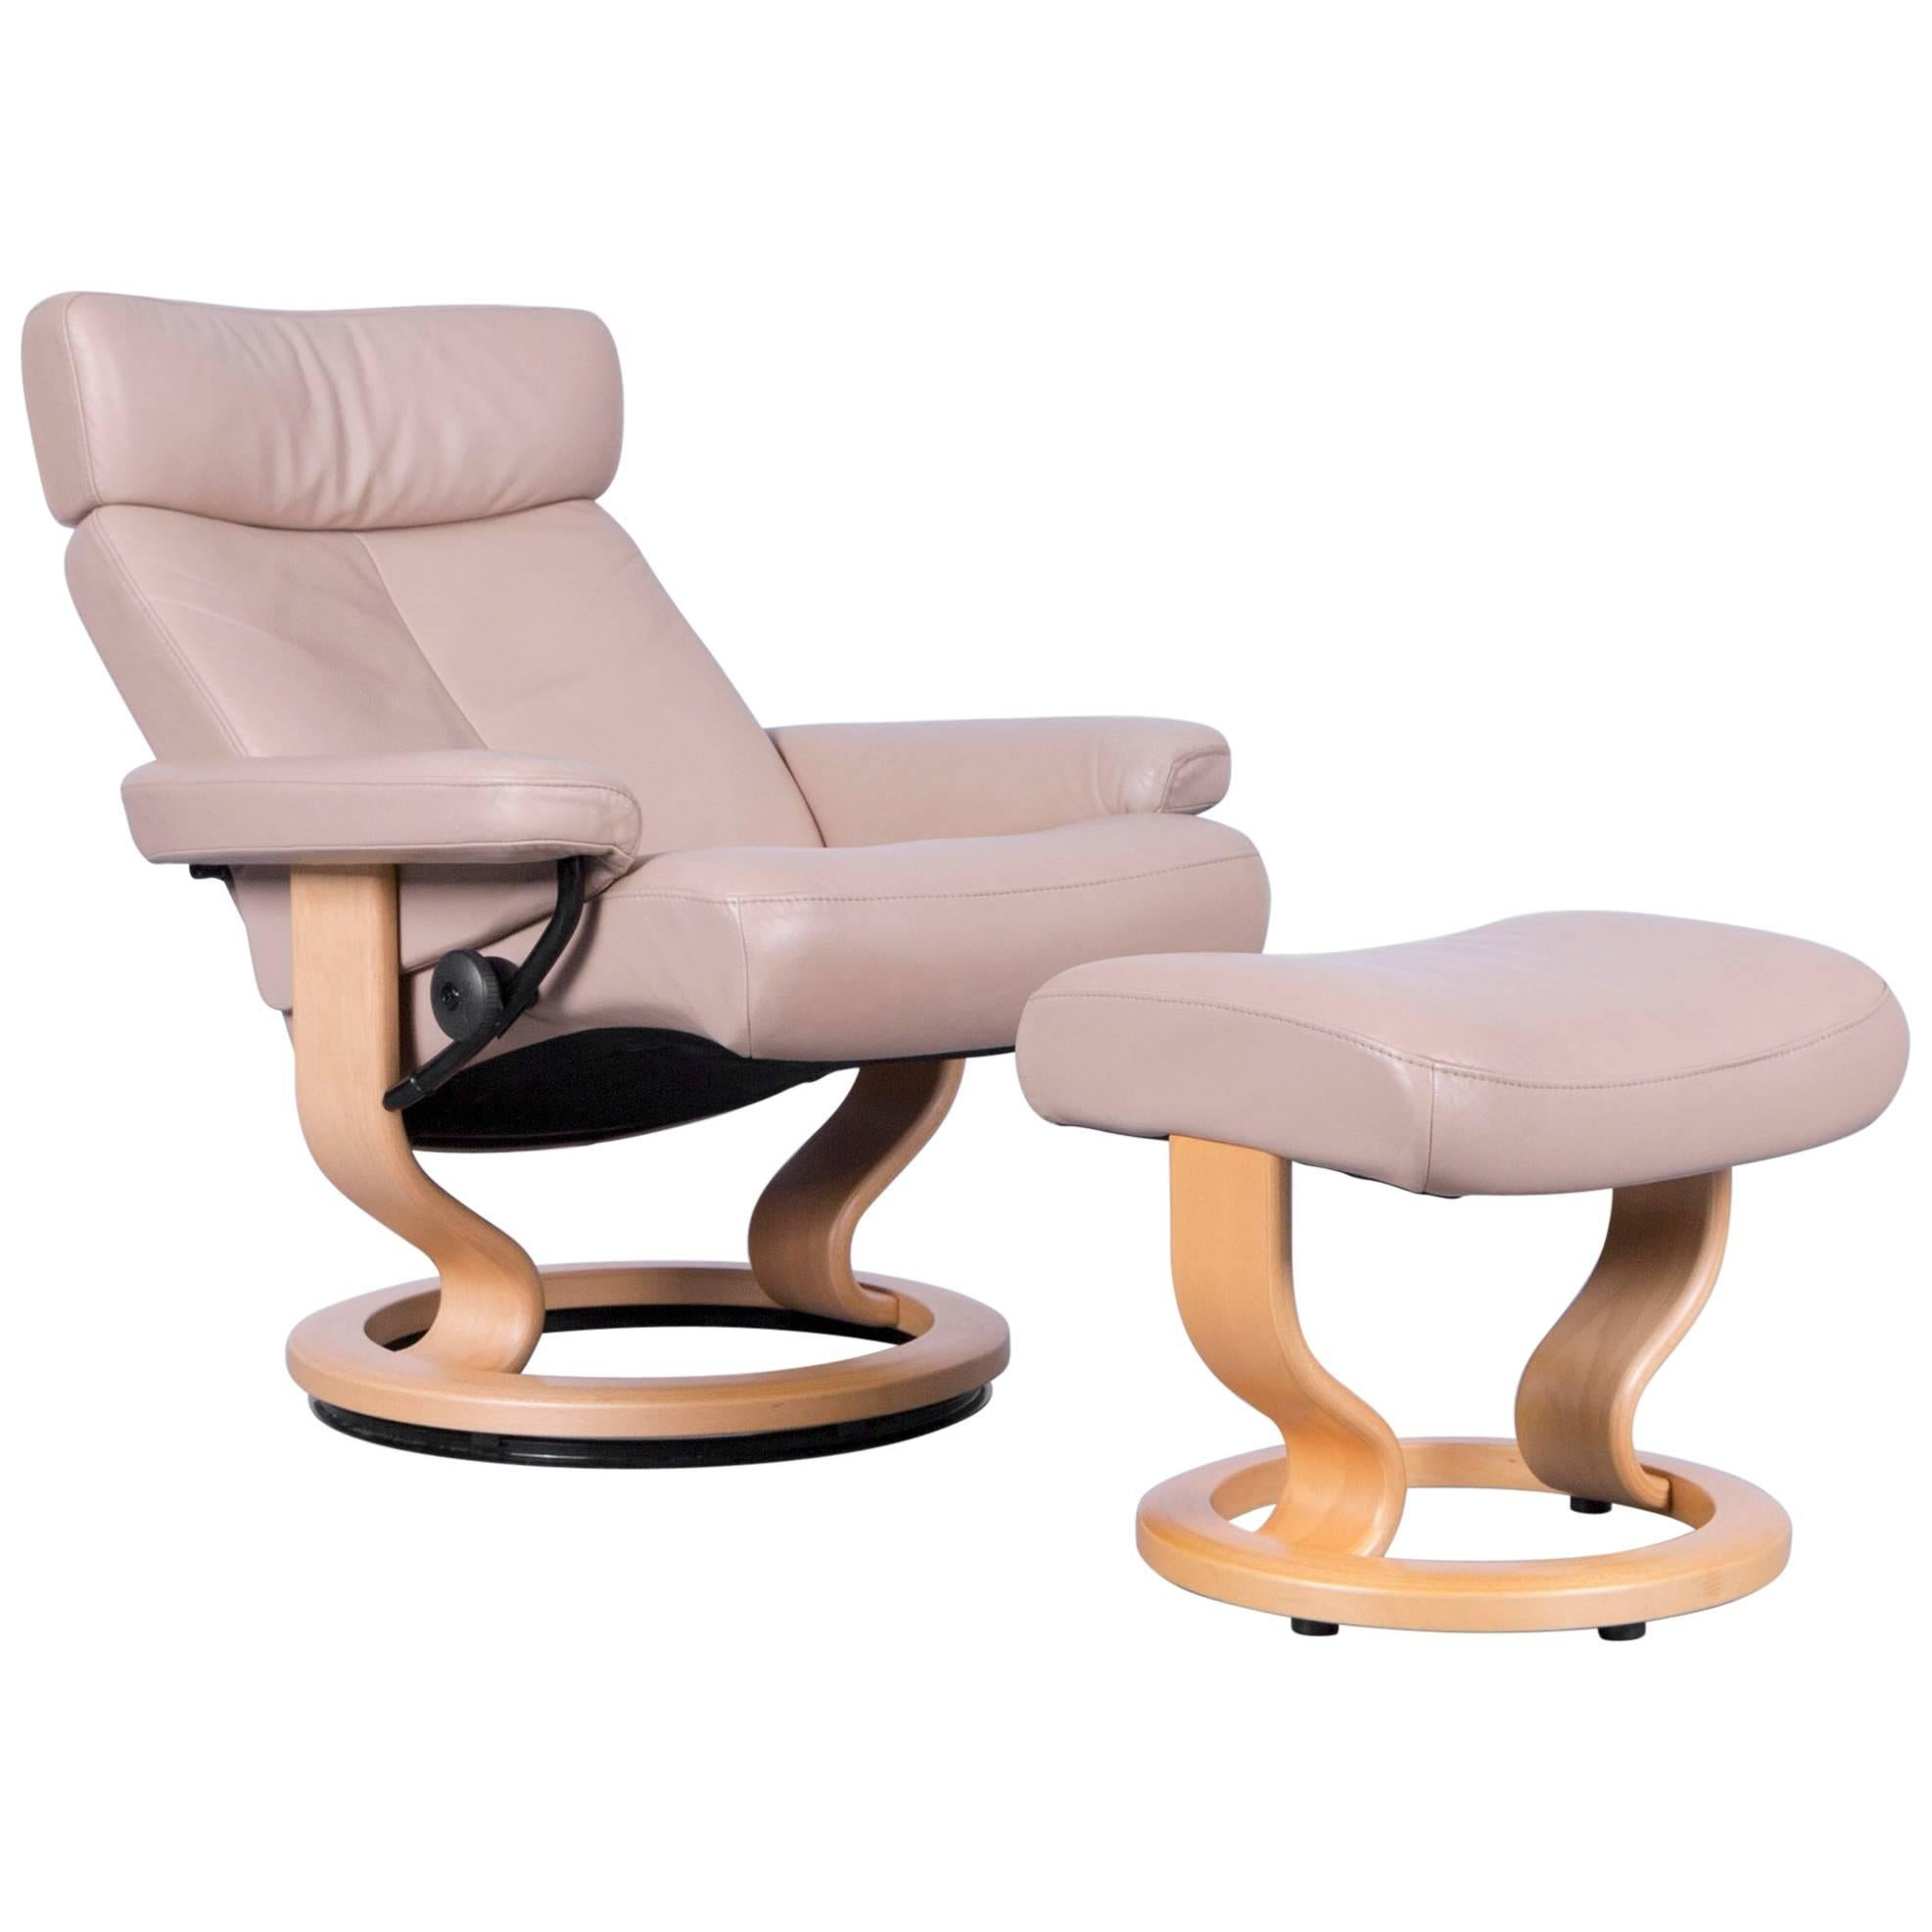 Stressless France Fauteuil Stressless Live Signature Chair Canap De Relaxation Stressless